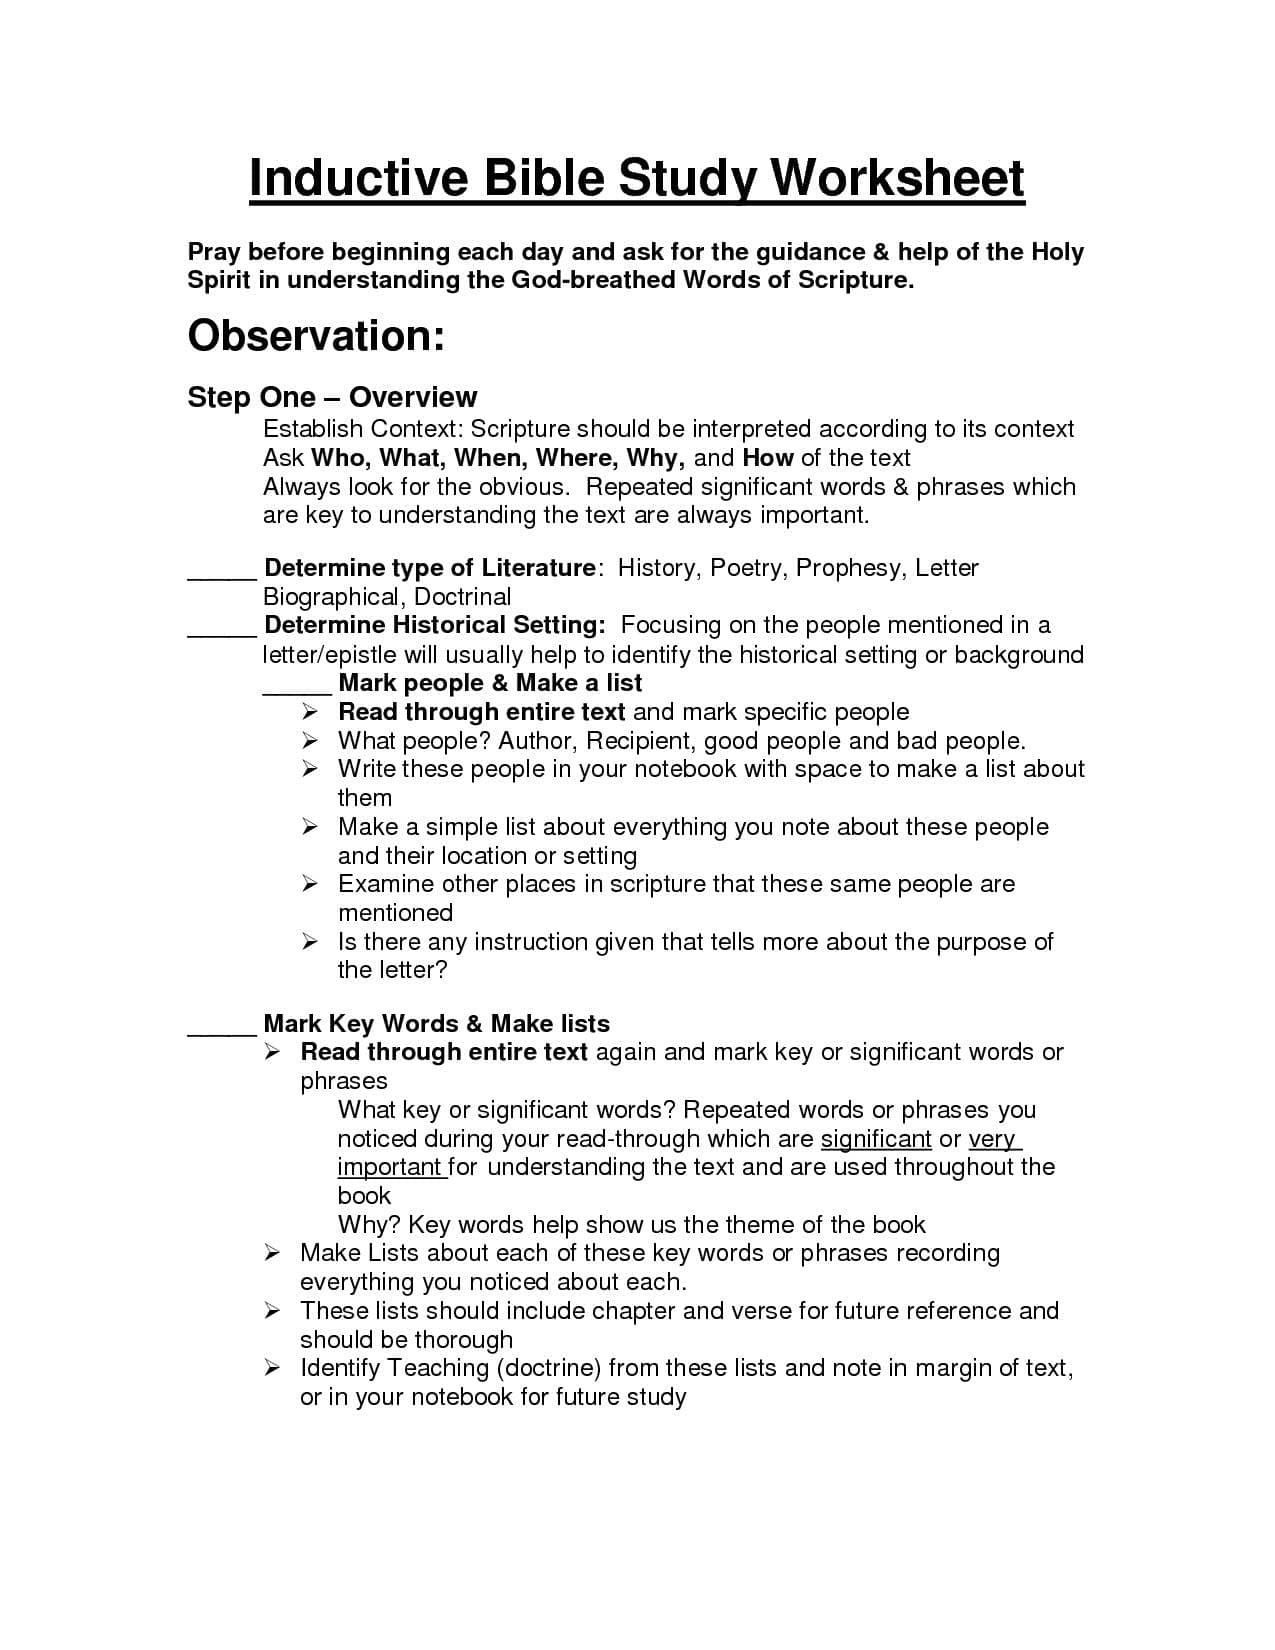 Bible Worksheets For Youth in 2020 (With images) Bible